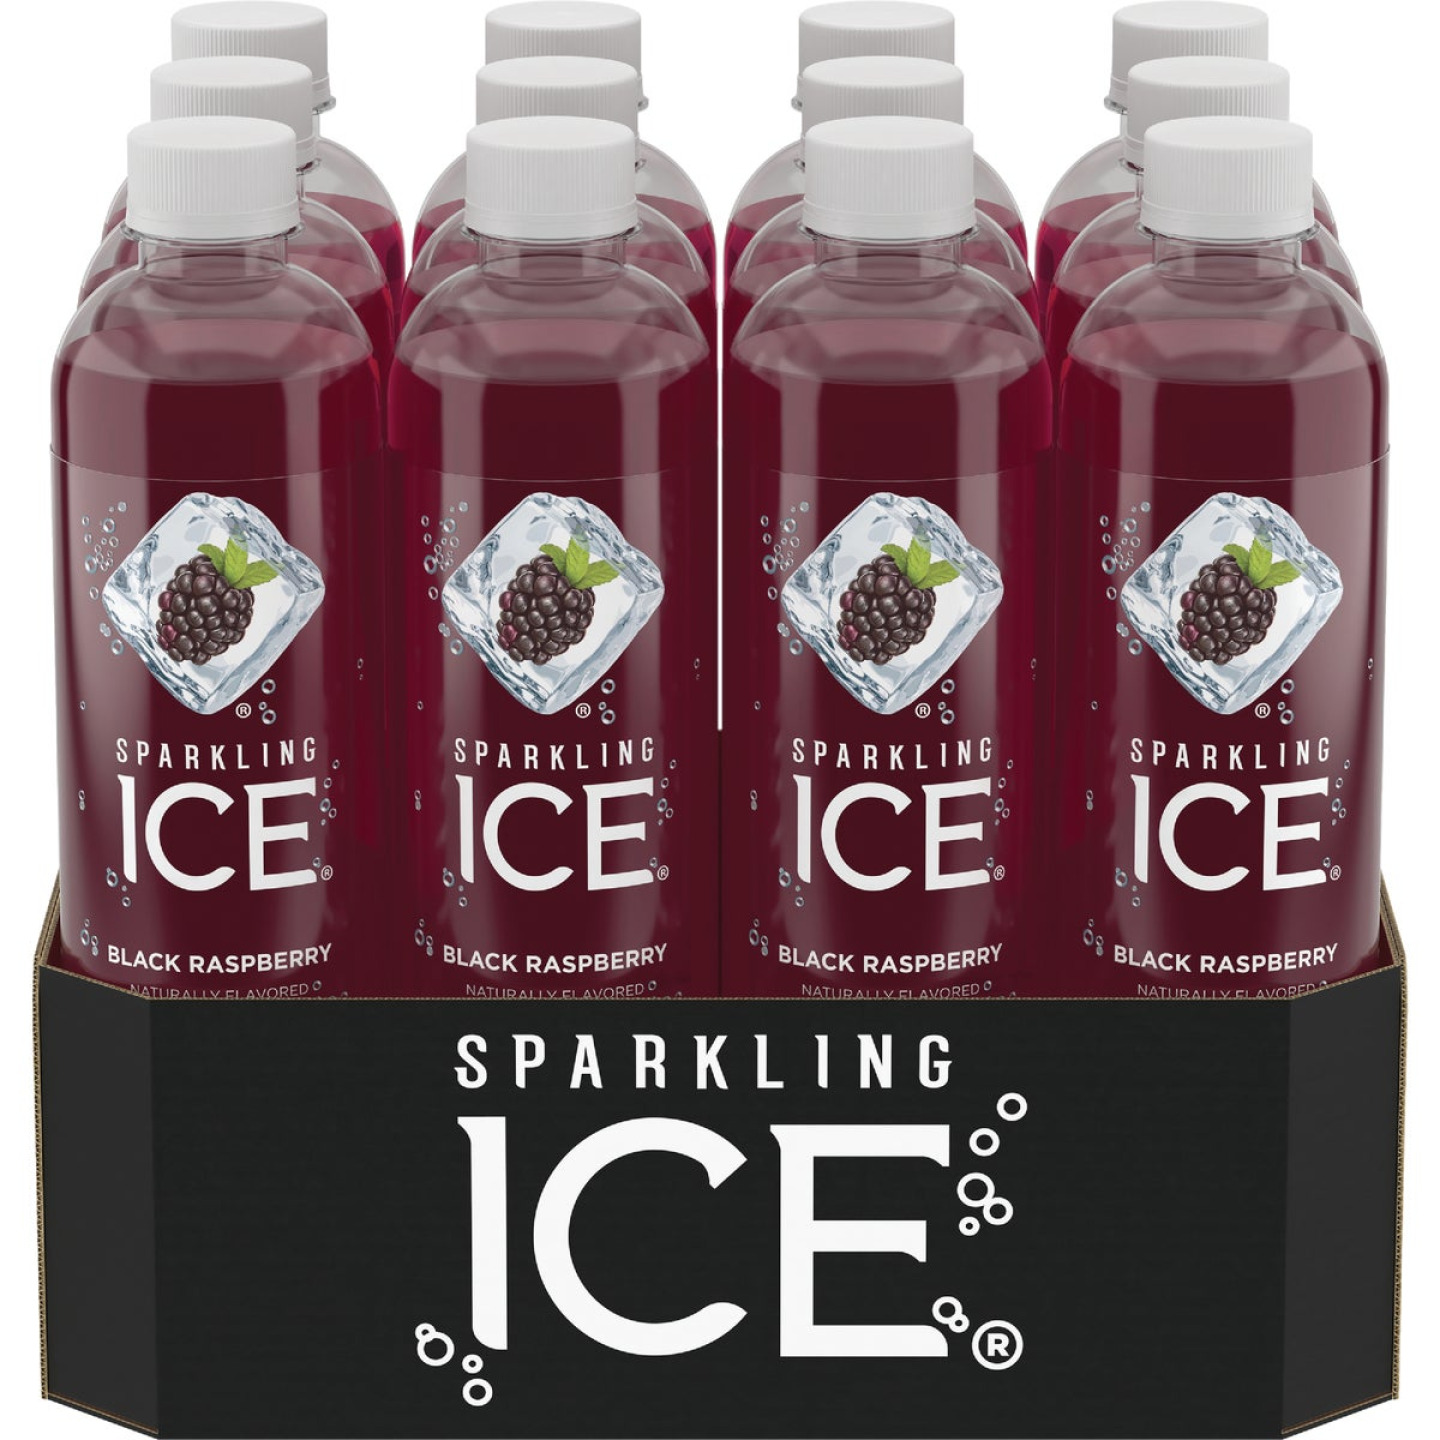 Talking Rain Sparkling Ice 17 Oz. Water, Black Raspberry Image 1